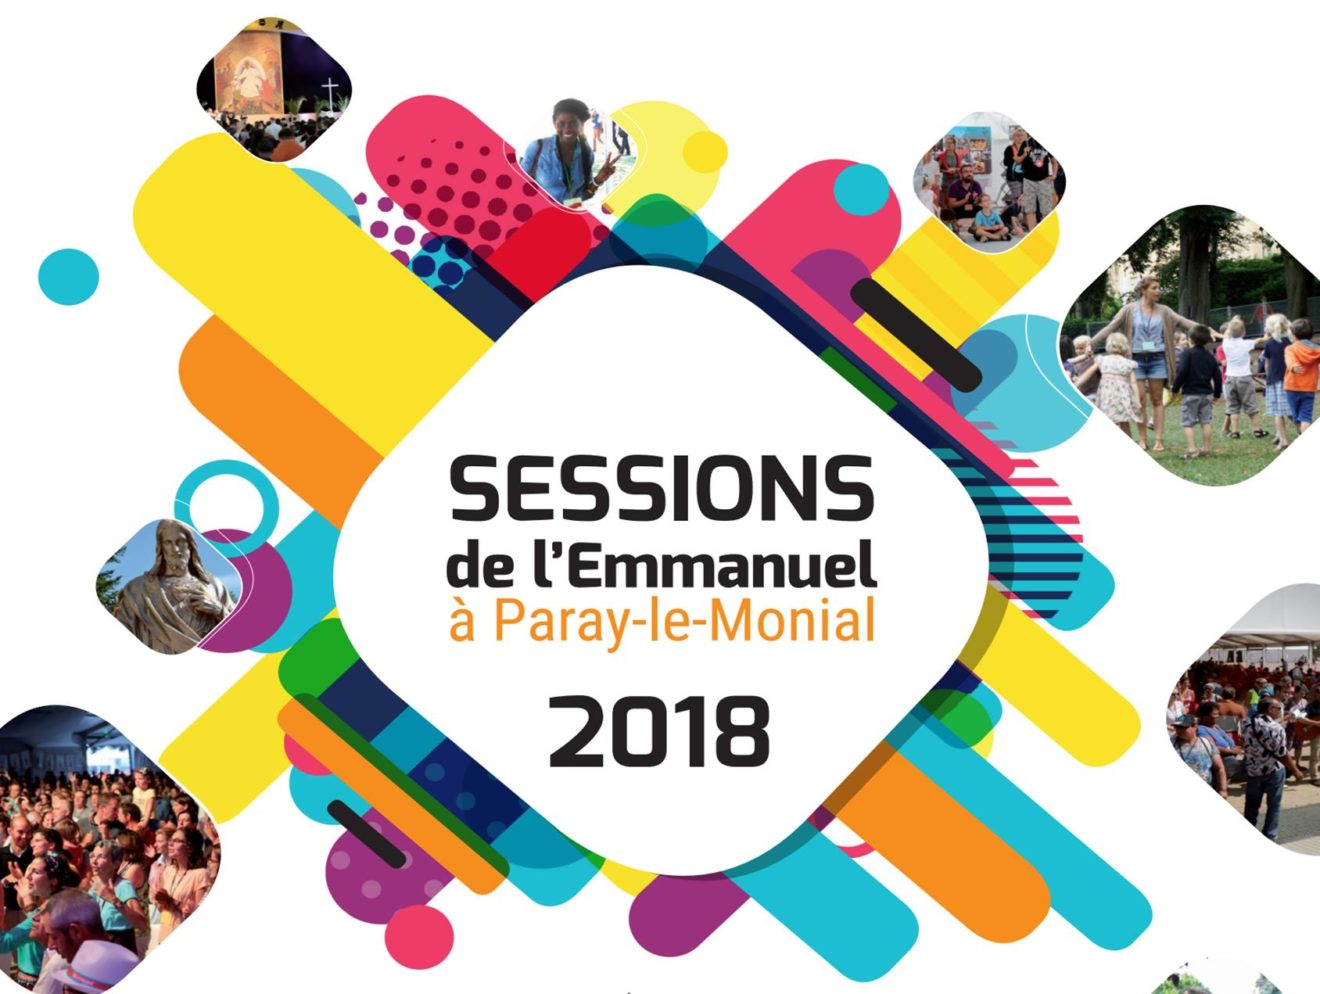 Sessions Paray le Monial 2018